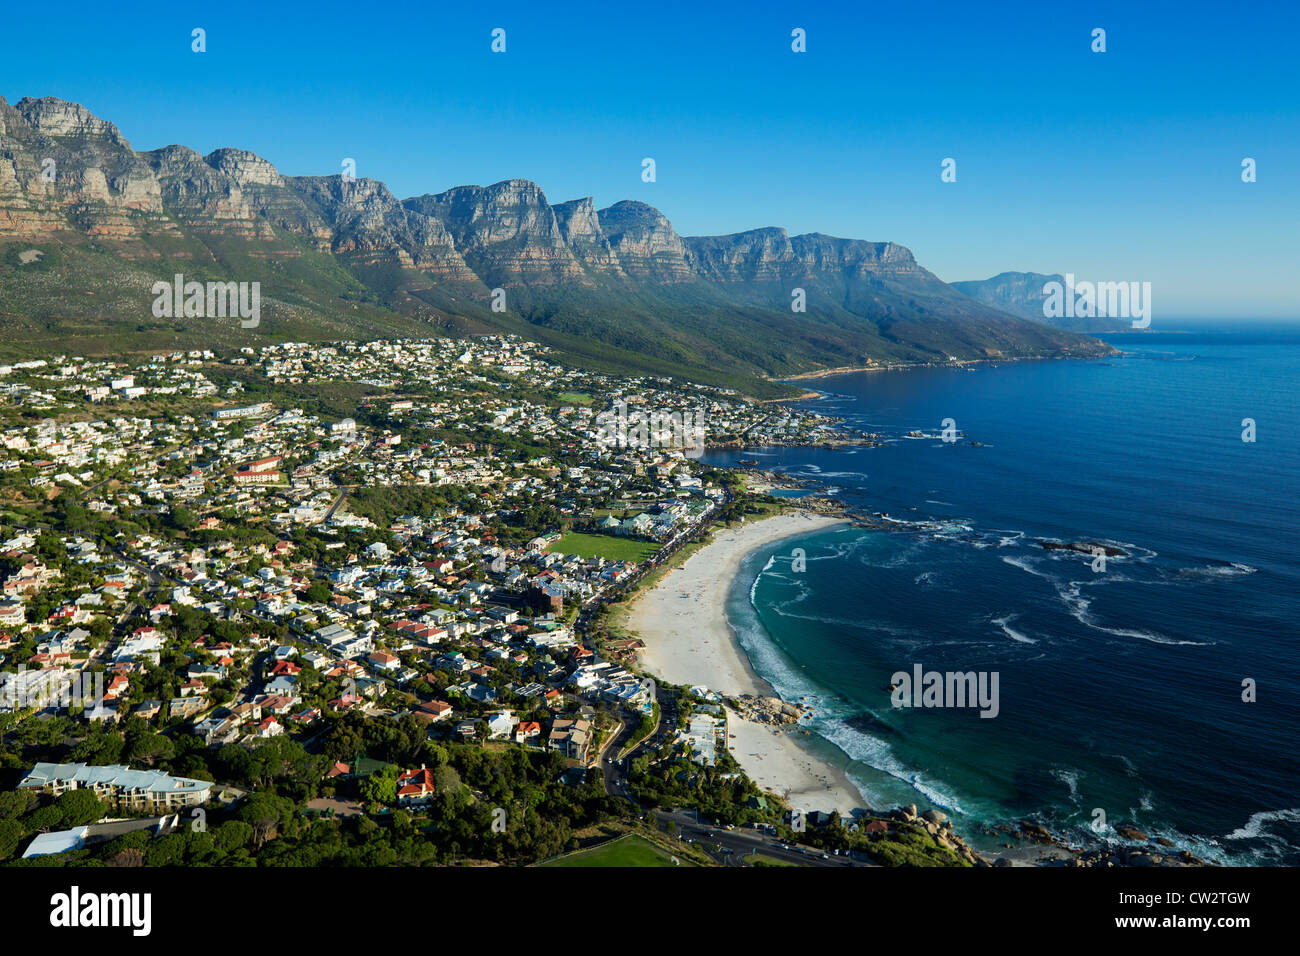 Aerial view of Camps Bay with the view of the Twelve Apostles mountain range.Cape Town.South Africa - Stock Image